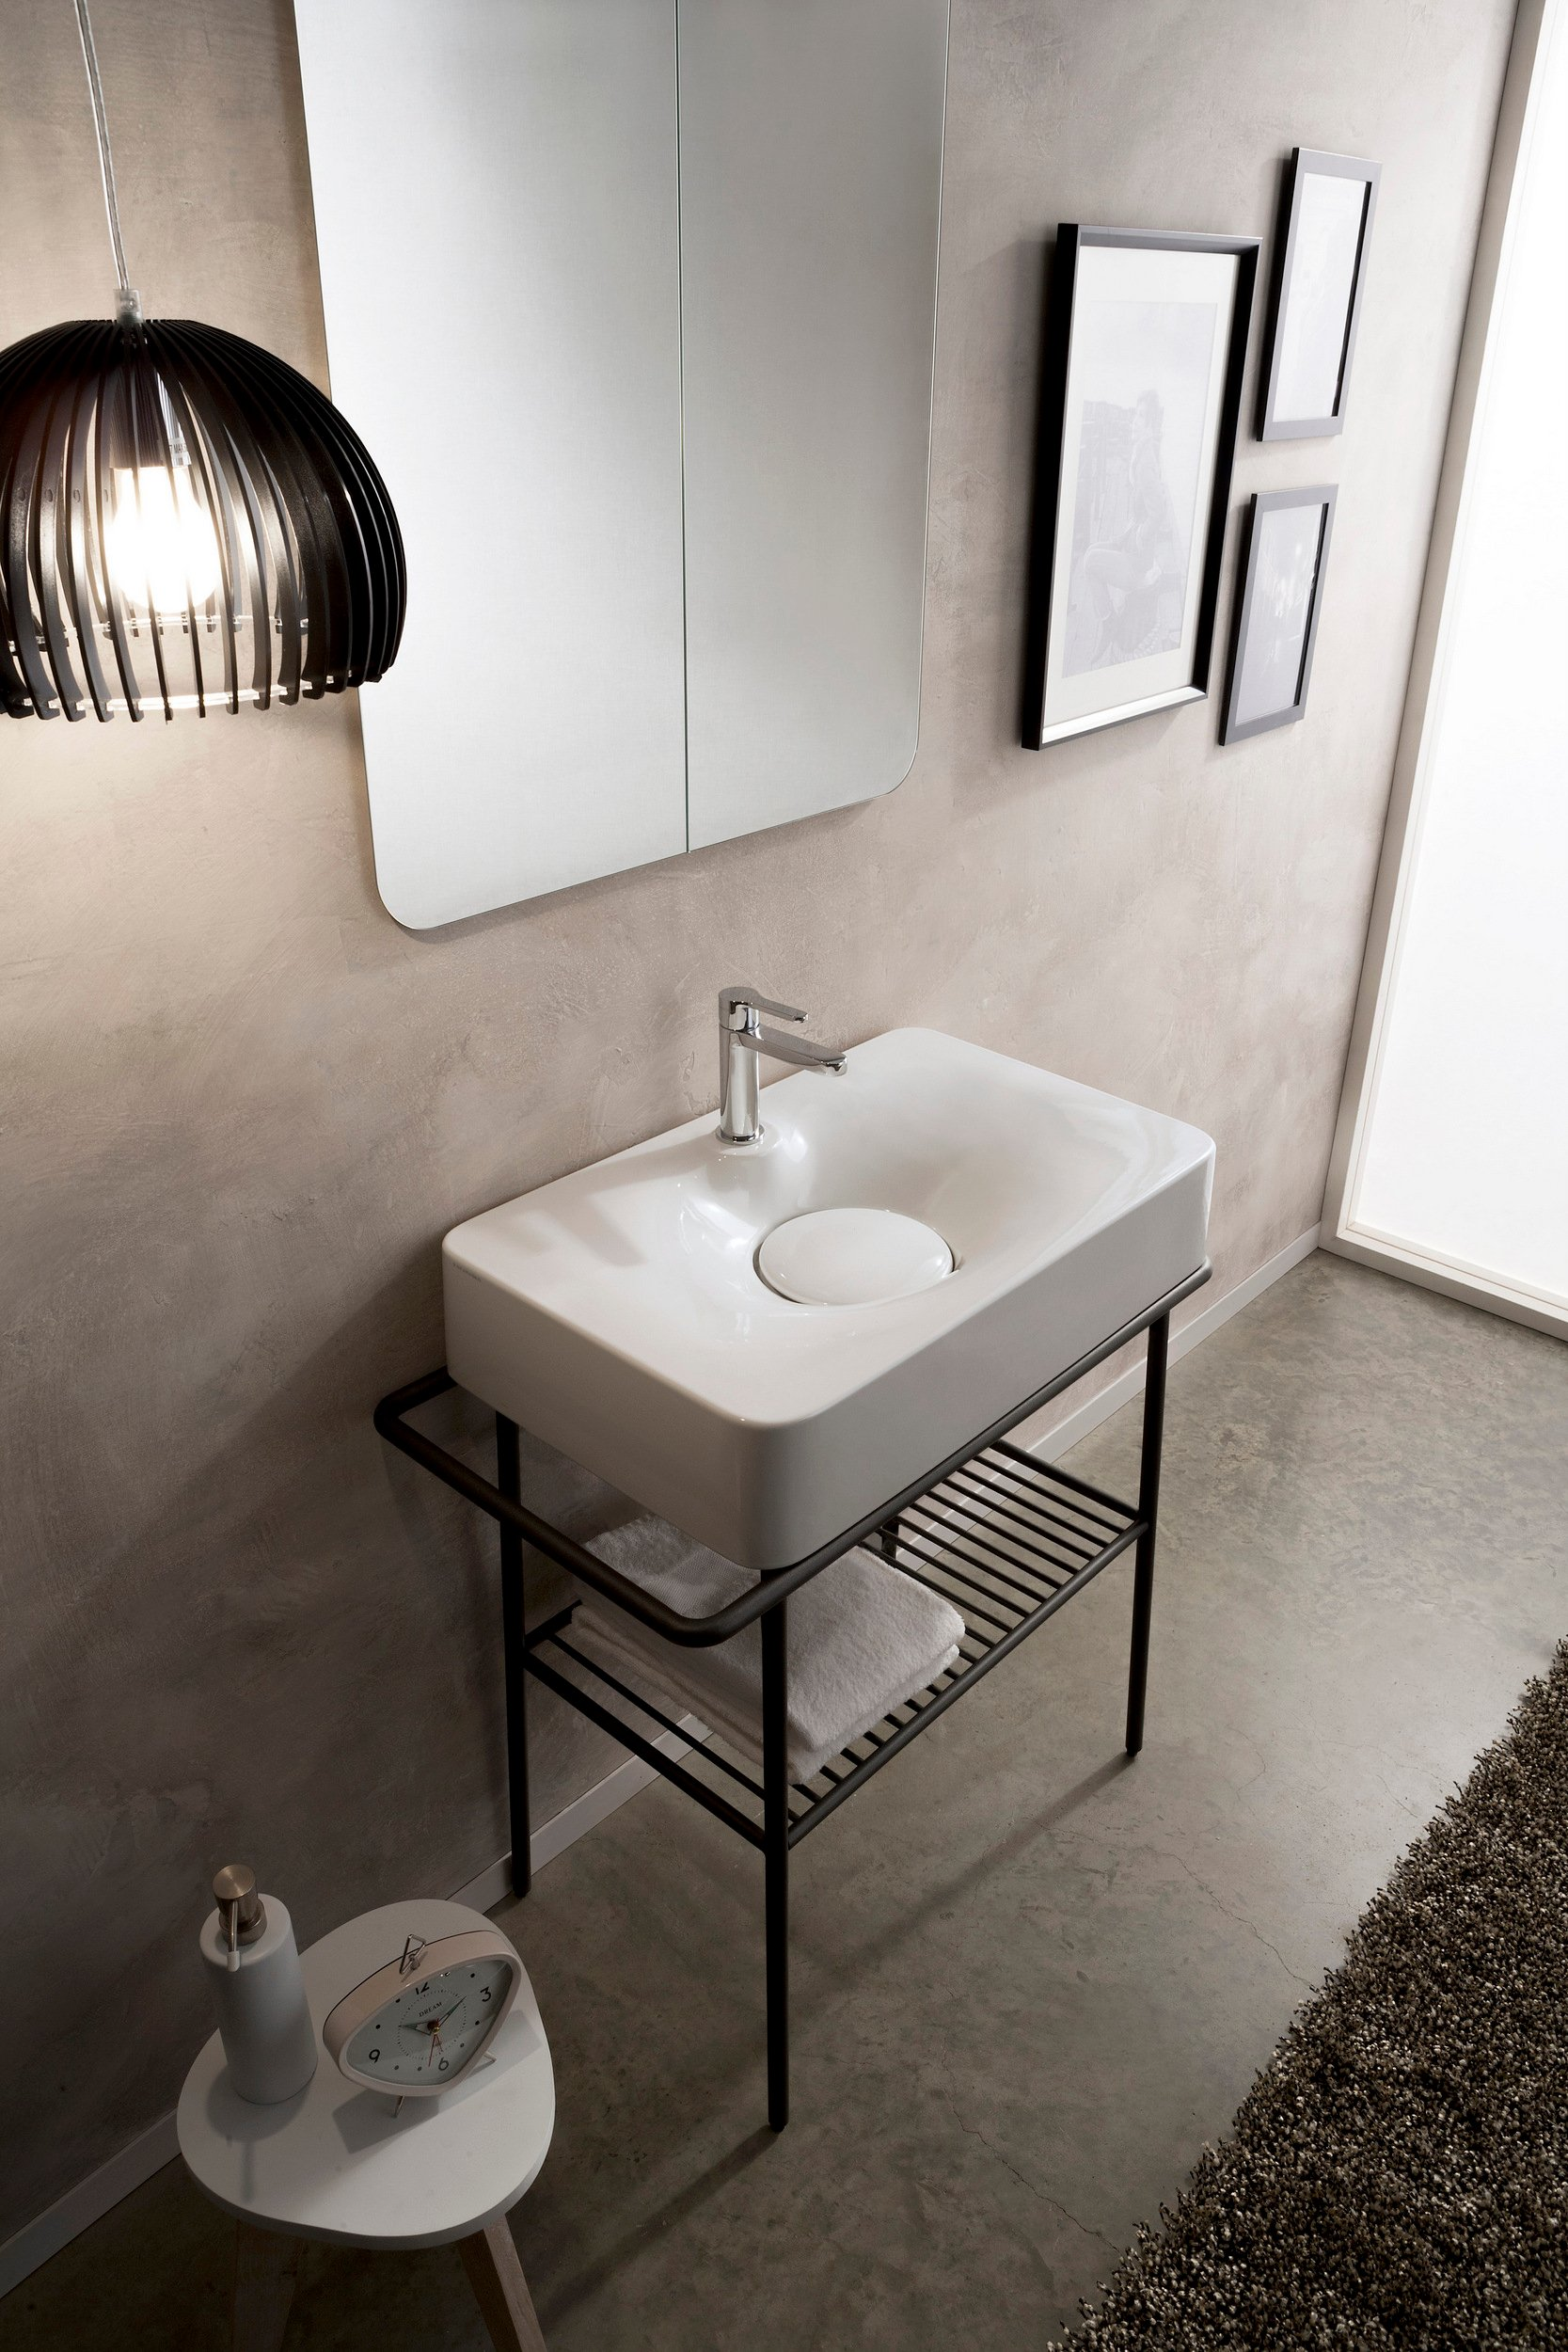 lavabo da appoggio in ceramica con porta asciugamani collezione fuji by scarabeo ceramiche. Black Bedroom Furniture Sets. Home Design Ideas